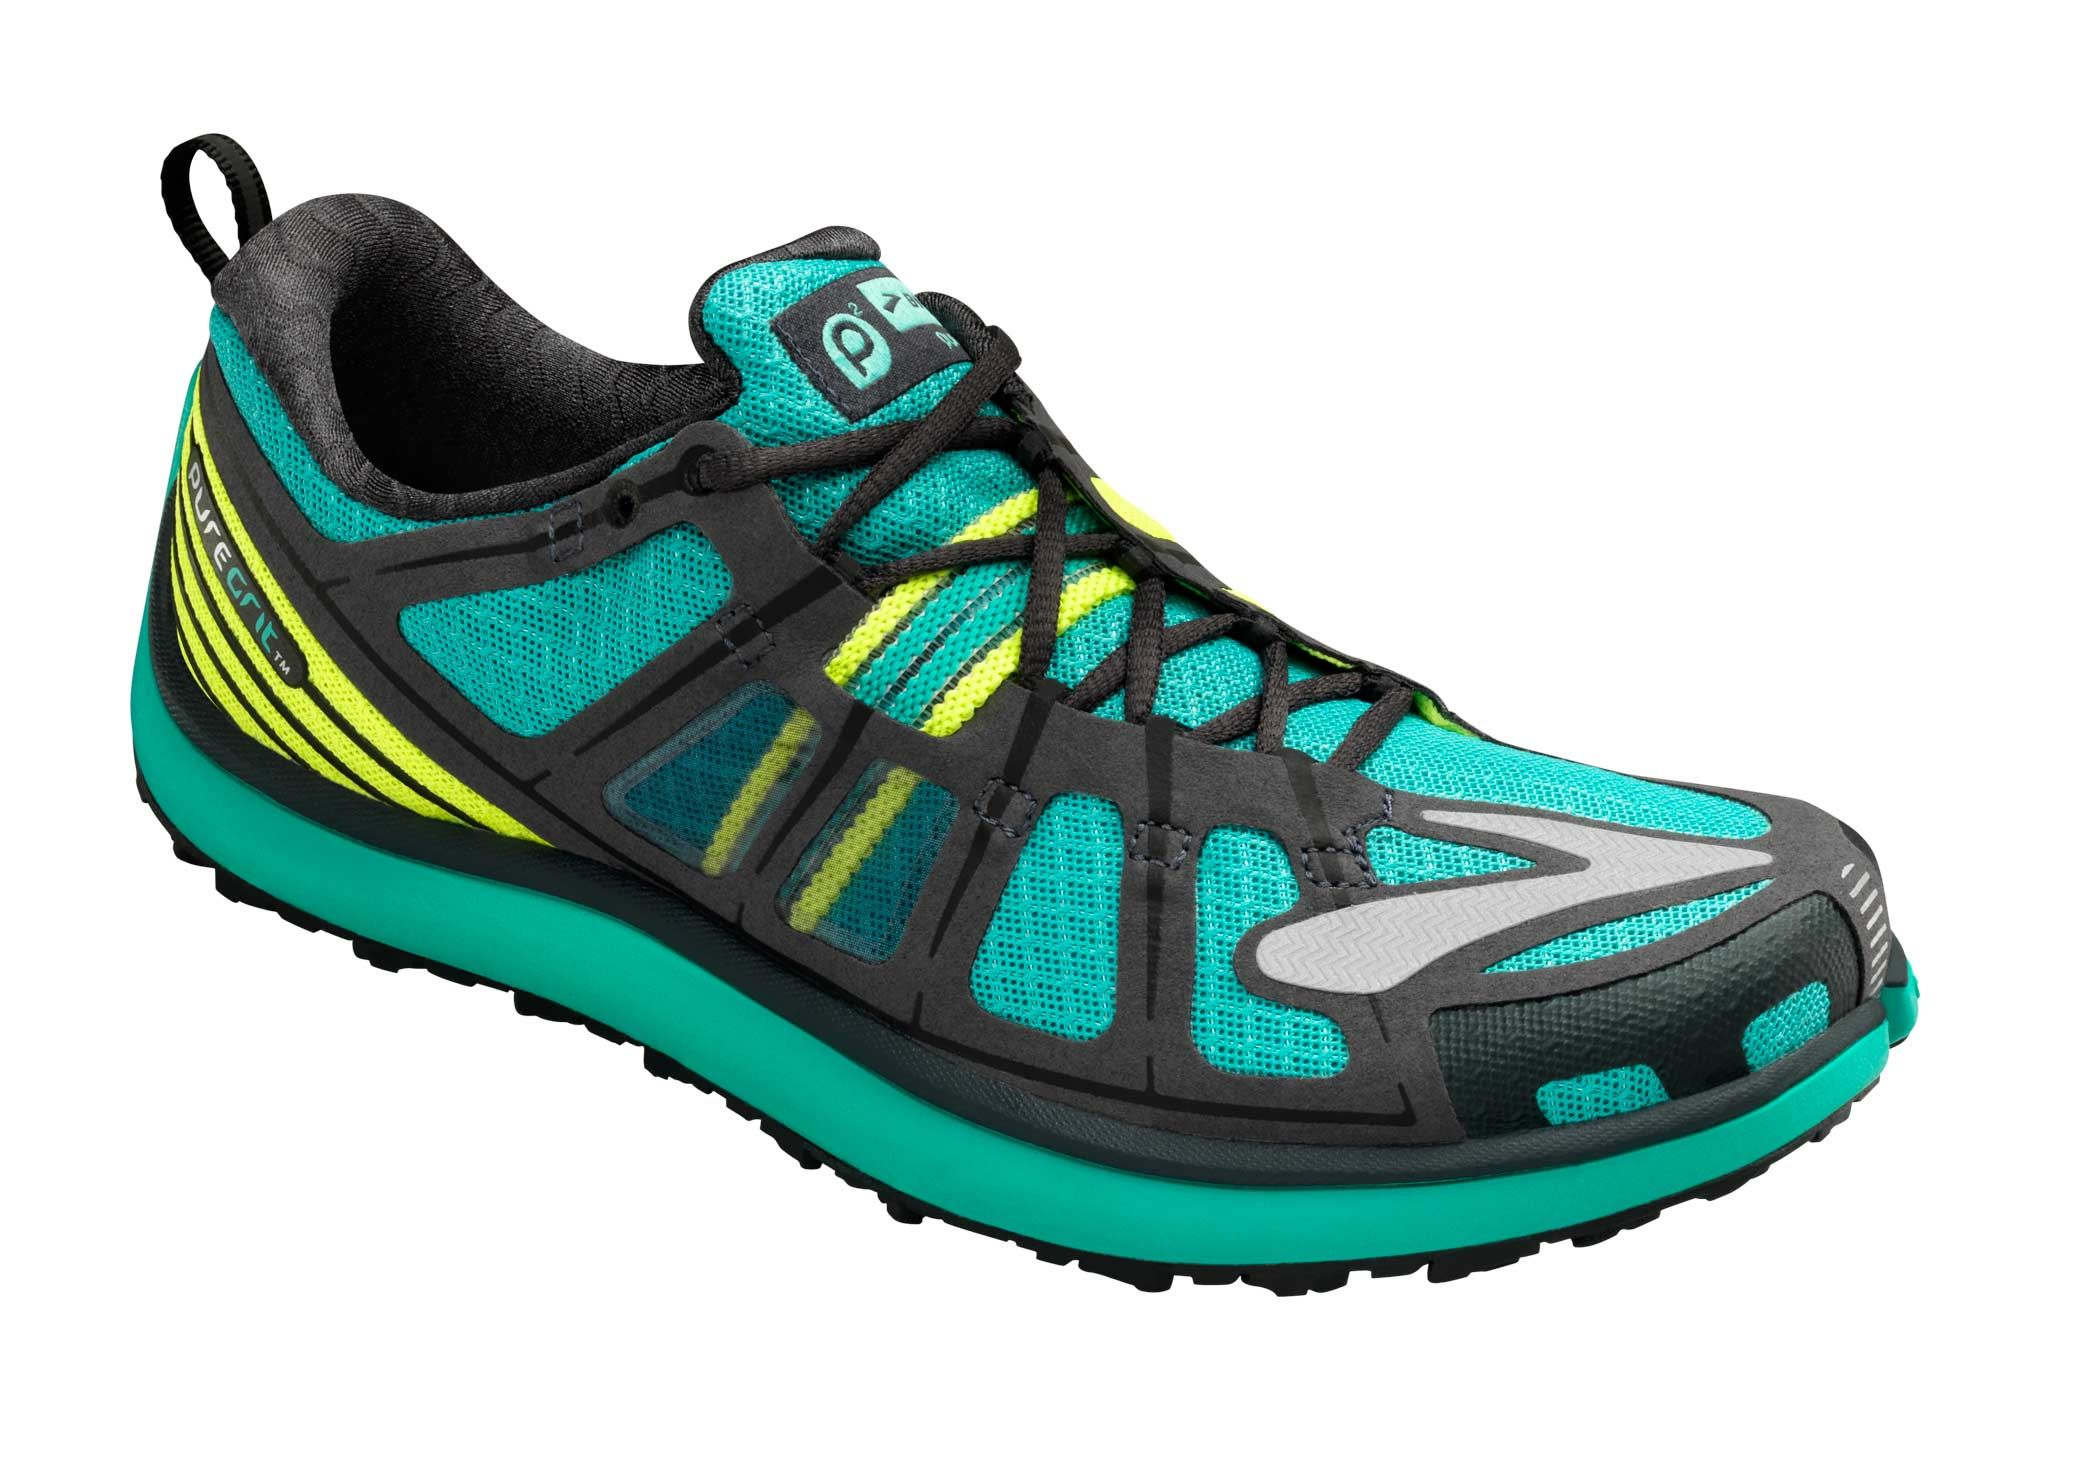 fa07761d05e Just bought these! Can t wait to try them out. Brooks PureGrit 2   lightweight trail running shoe for women